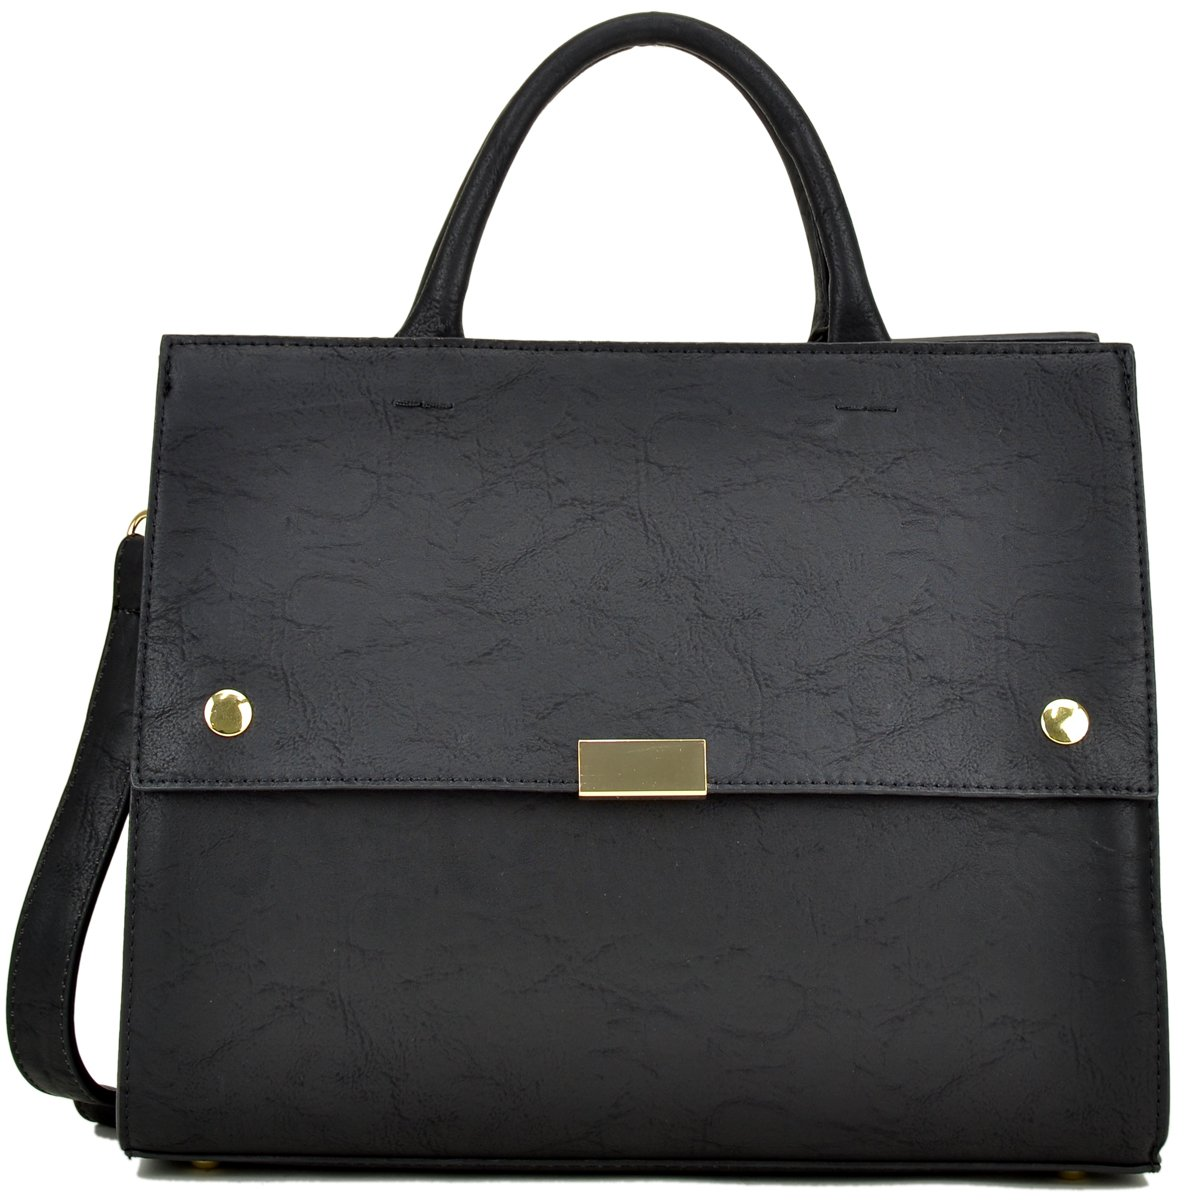 a8291be4c3 Amazon.com  Dasein Handbag for Women Classic Satchel Briefcase Shoulder Bag  Designer Purse (Black)  Shoes